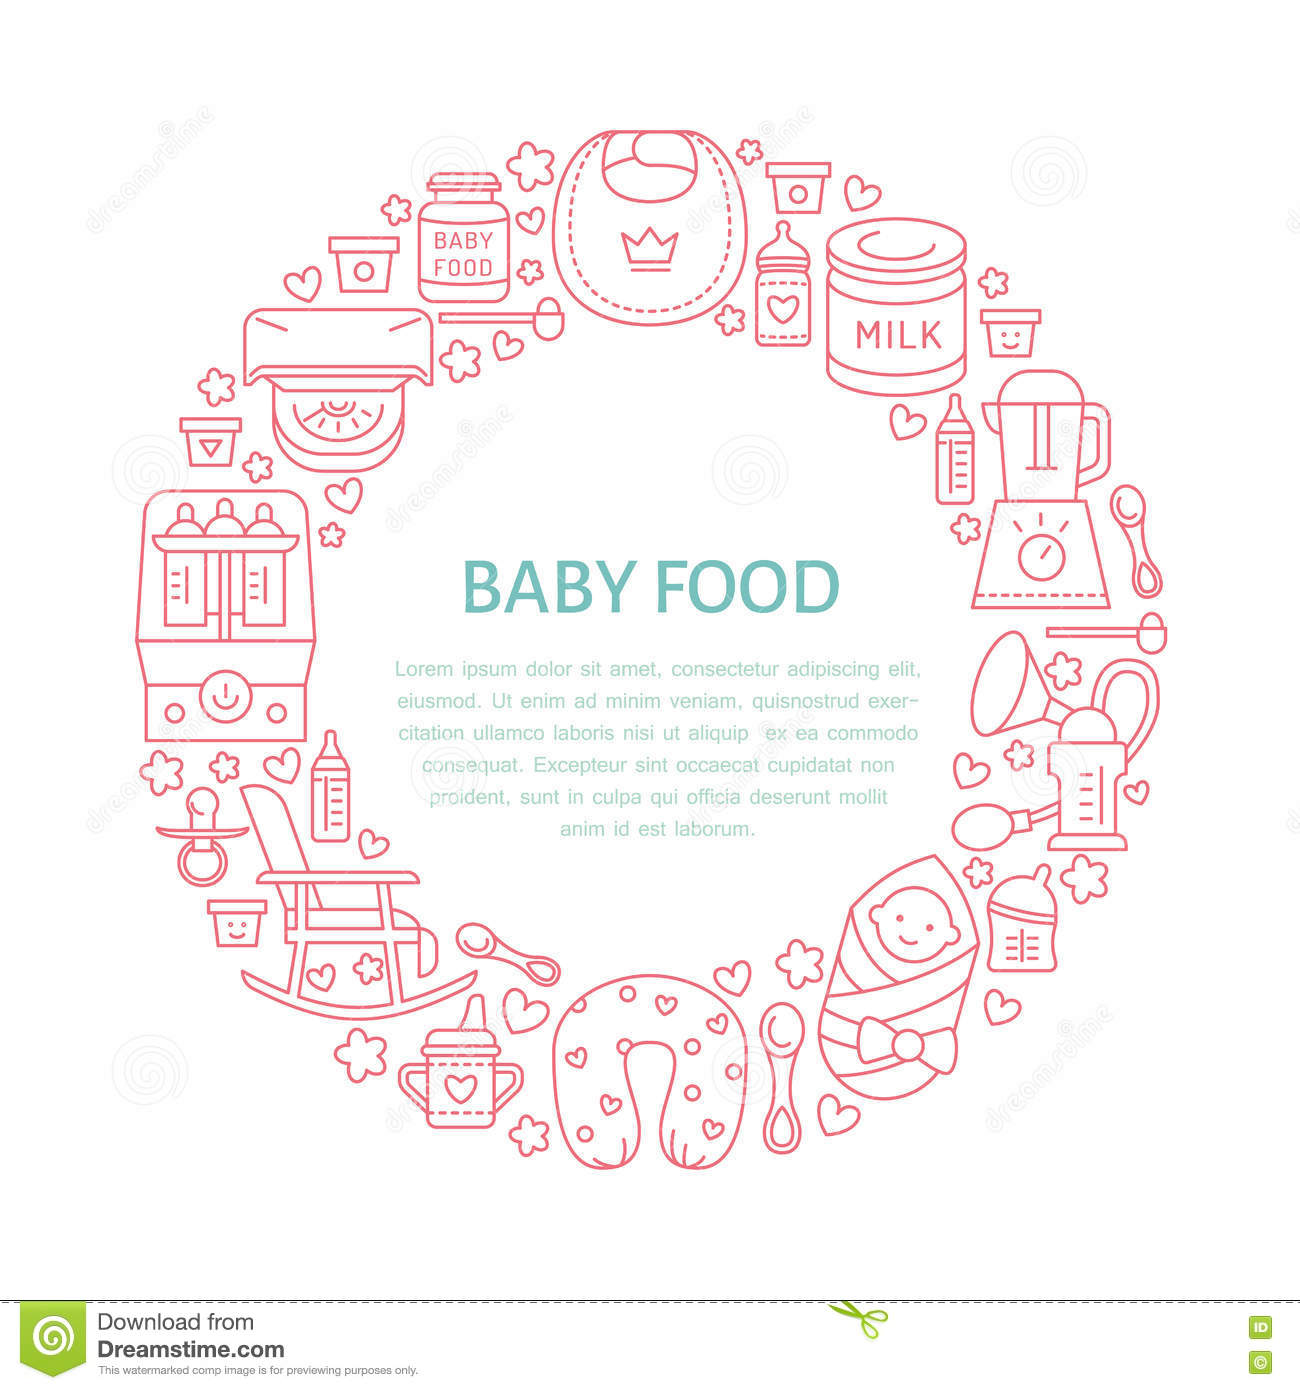 Breastfeeding poster template. Vector line illustration of breast feeding, baby infant food. Nursery element: breast pump, woman,